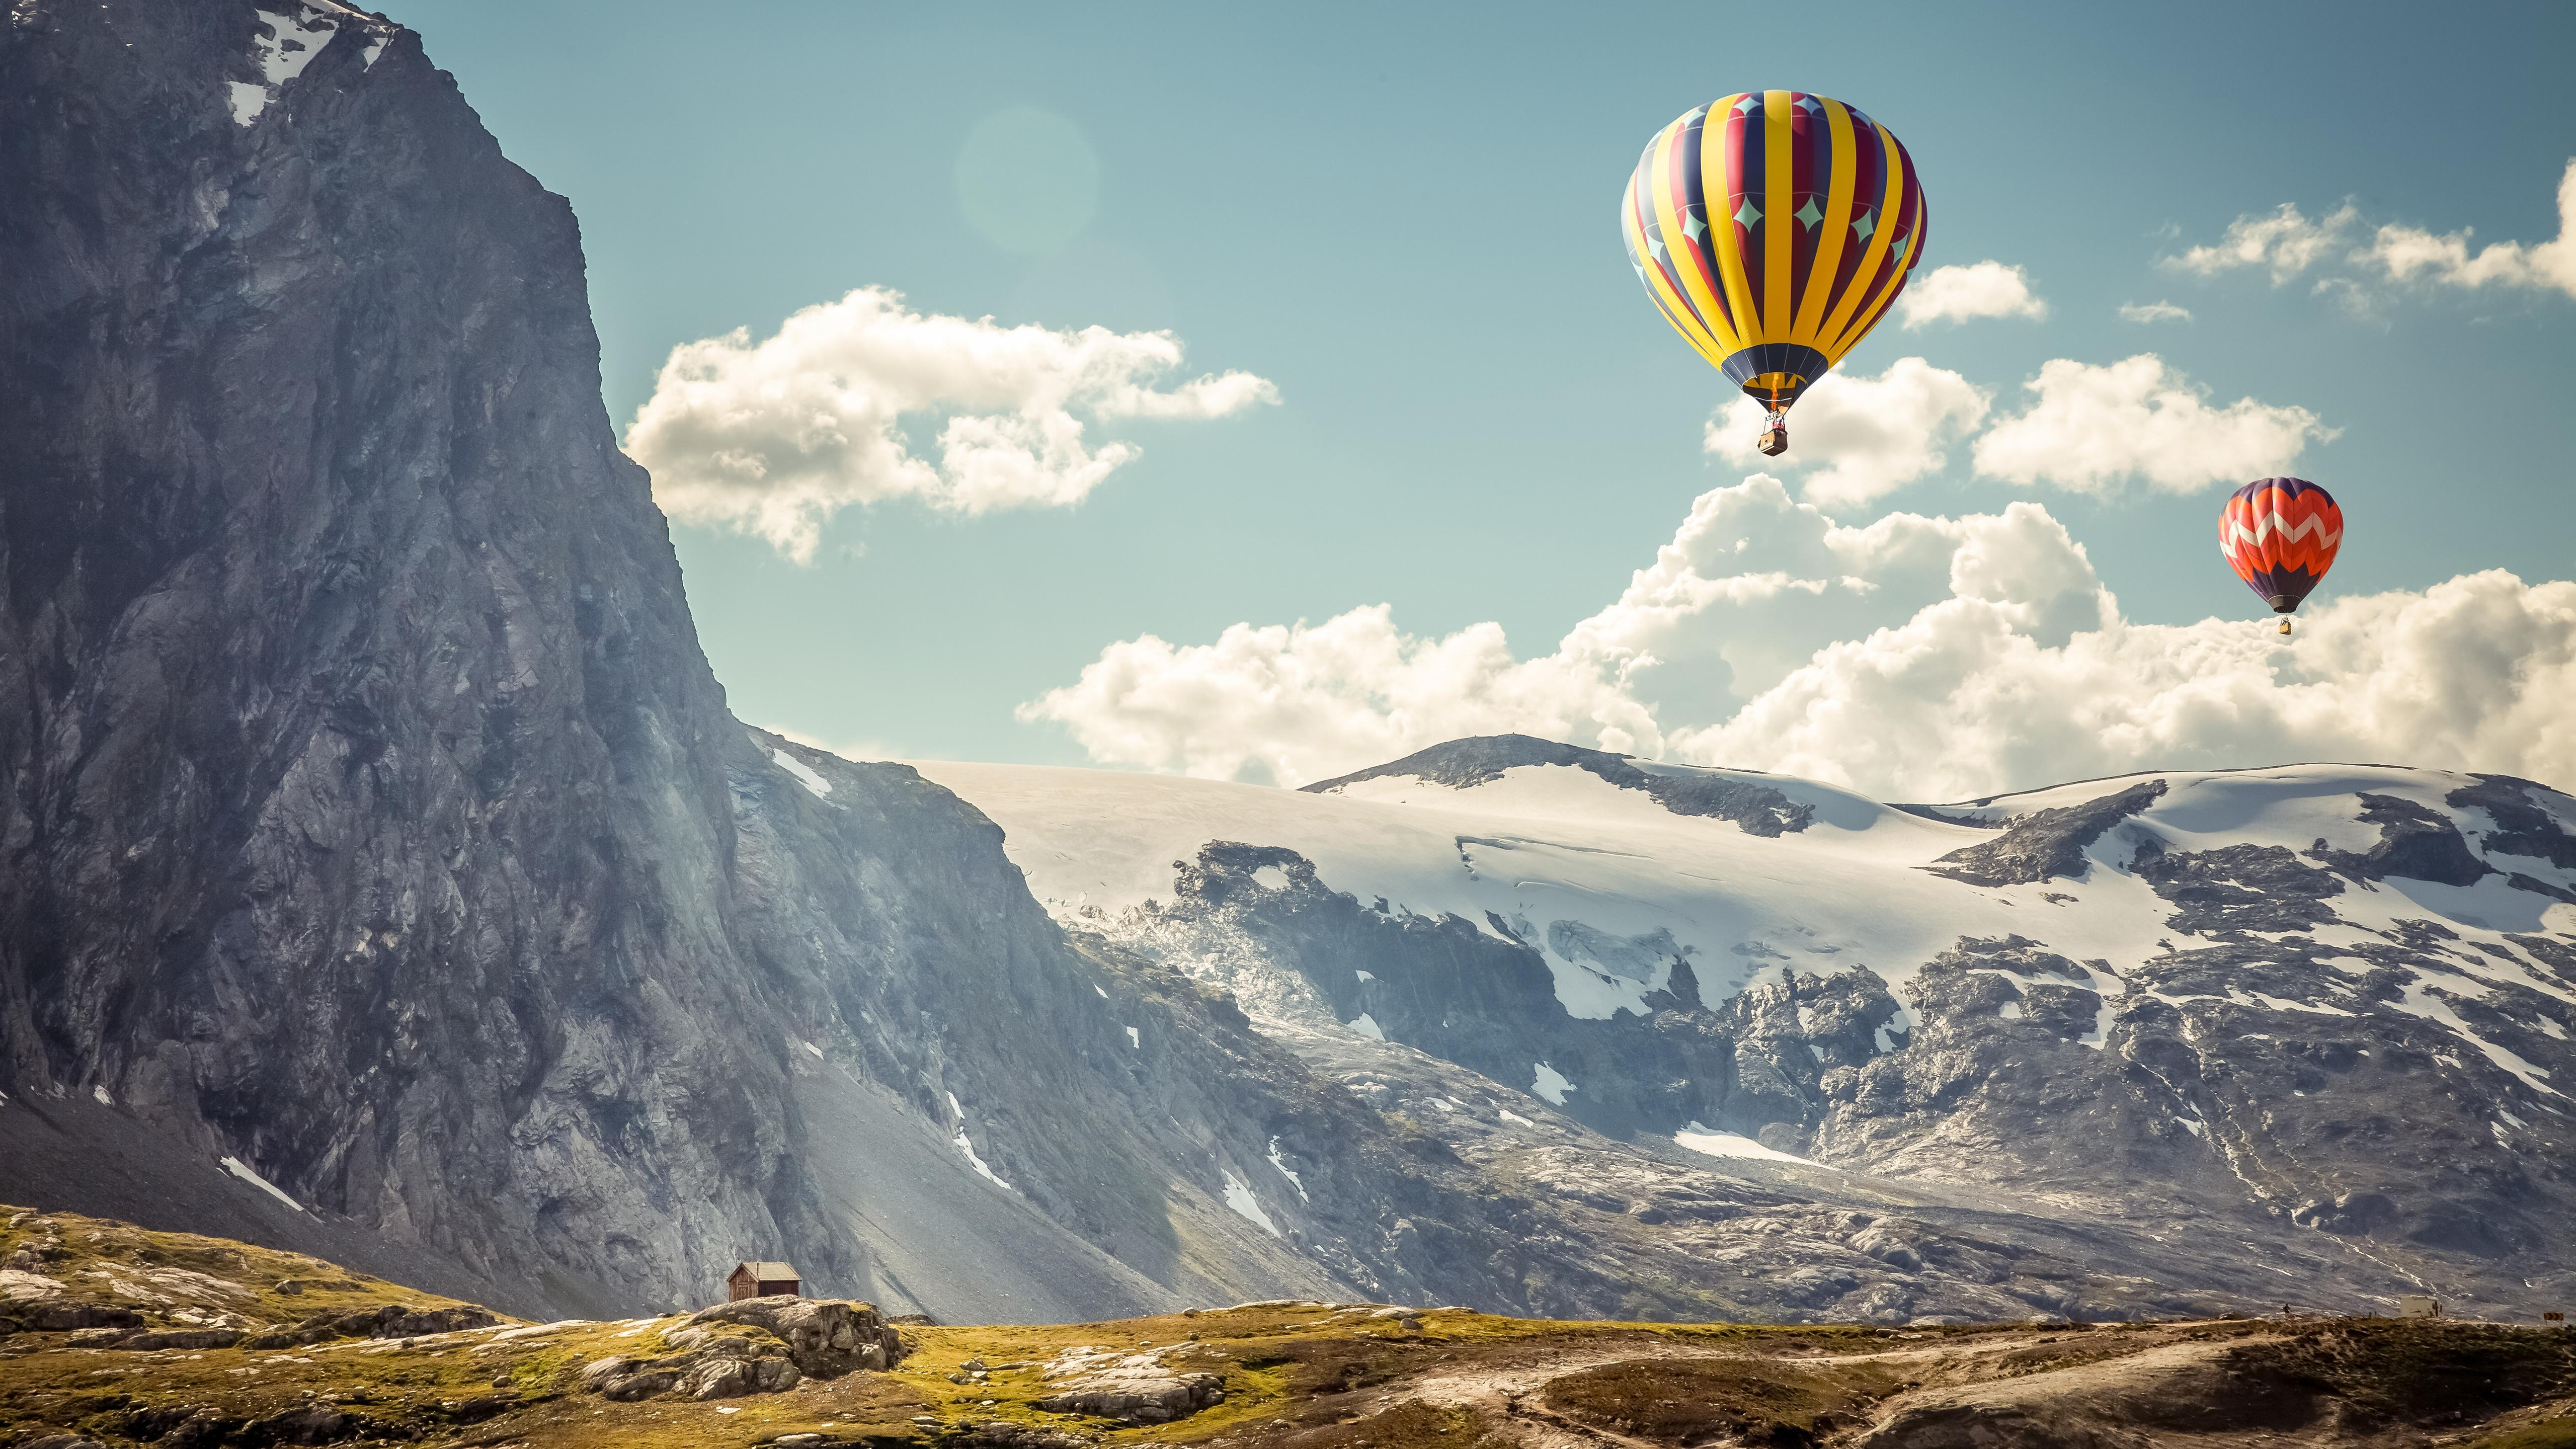 Download 5120x2880 Hot Air Balloon, Scenic, Mountain, Clouds, House